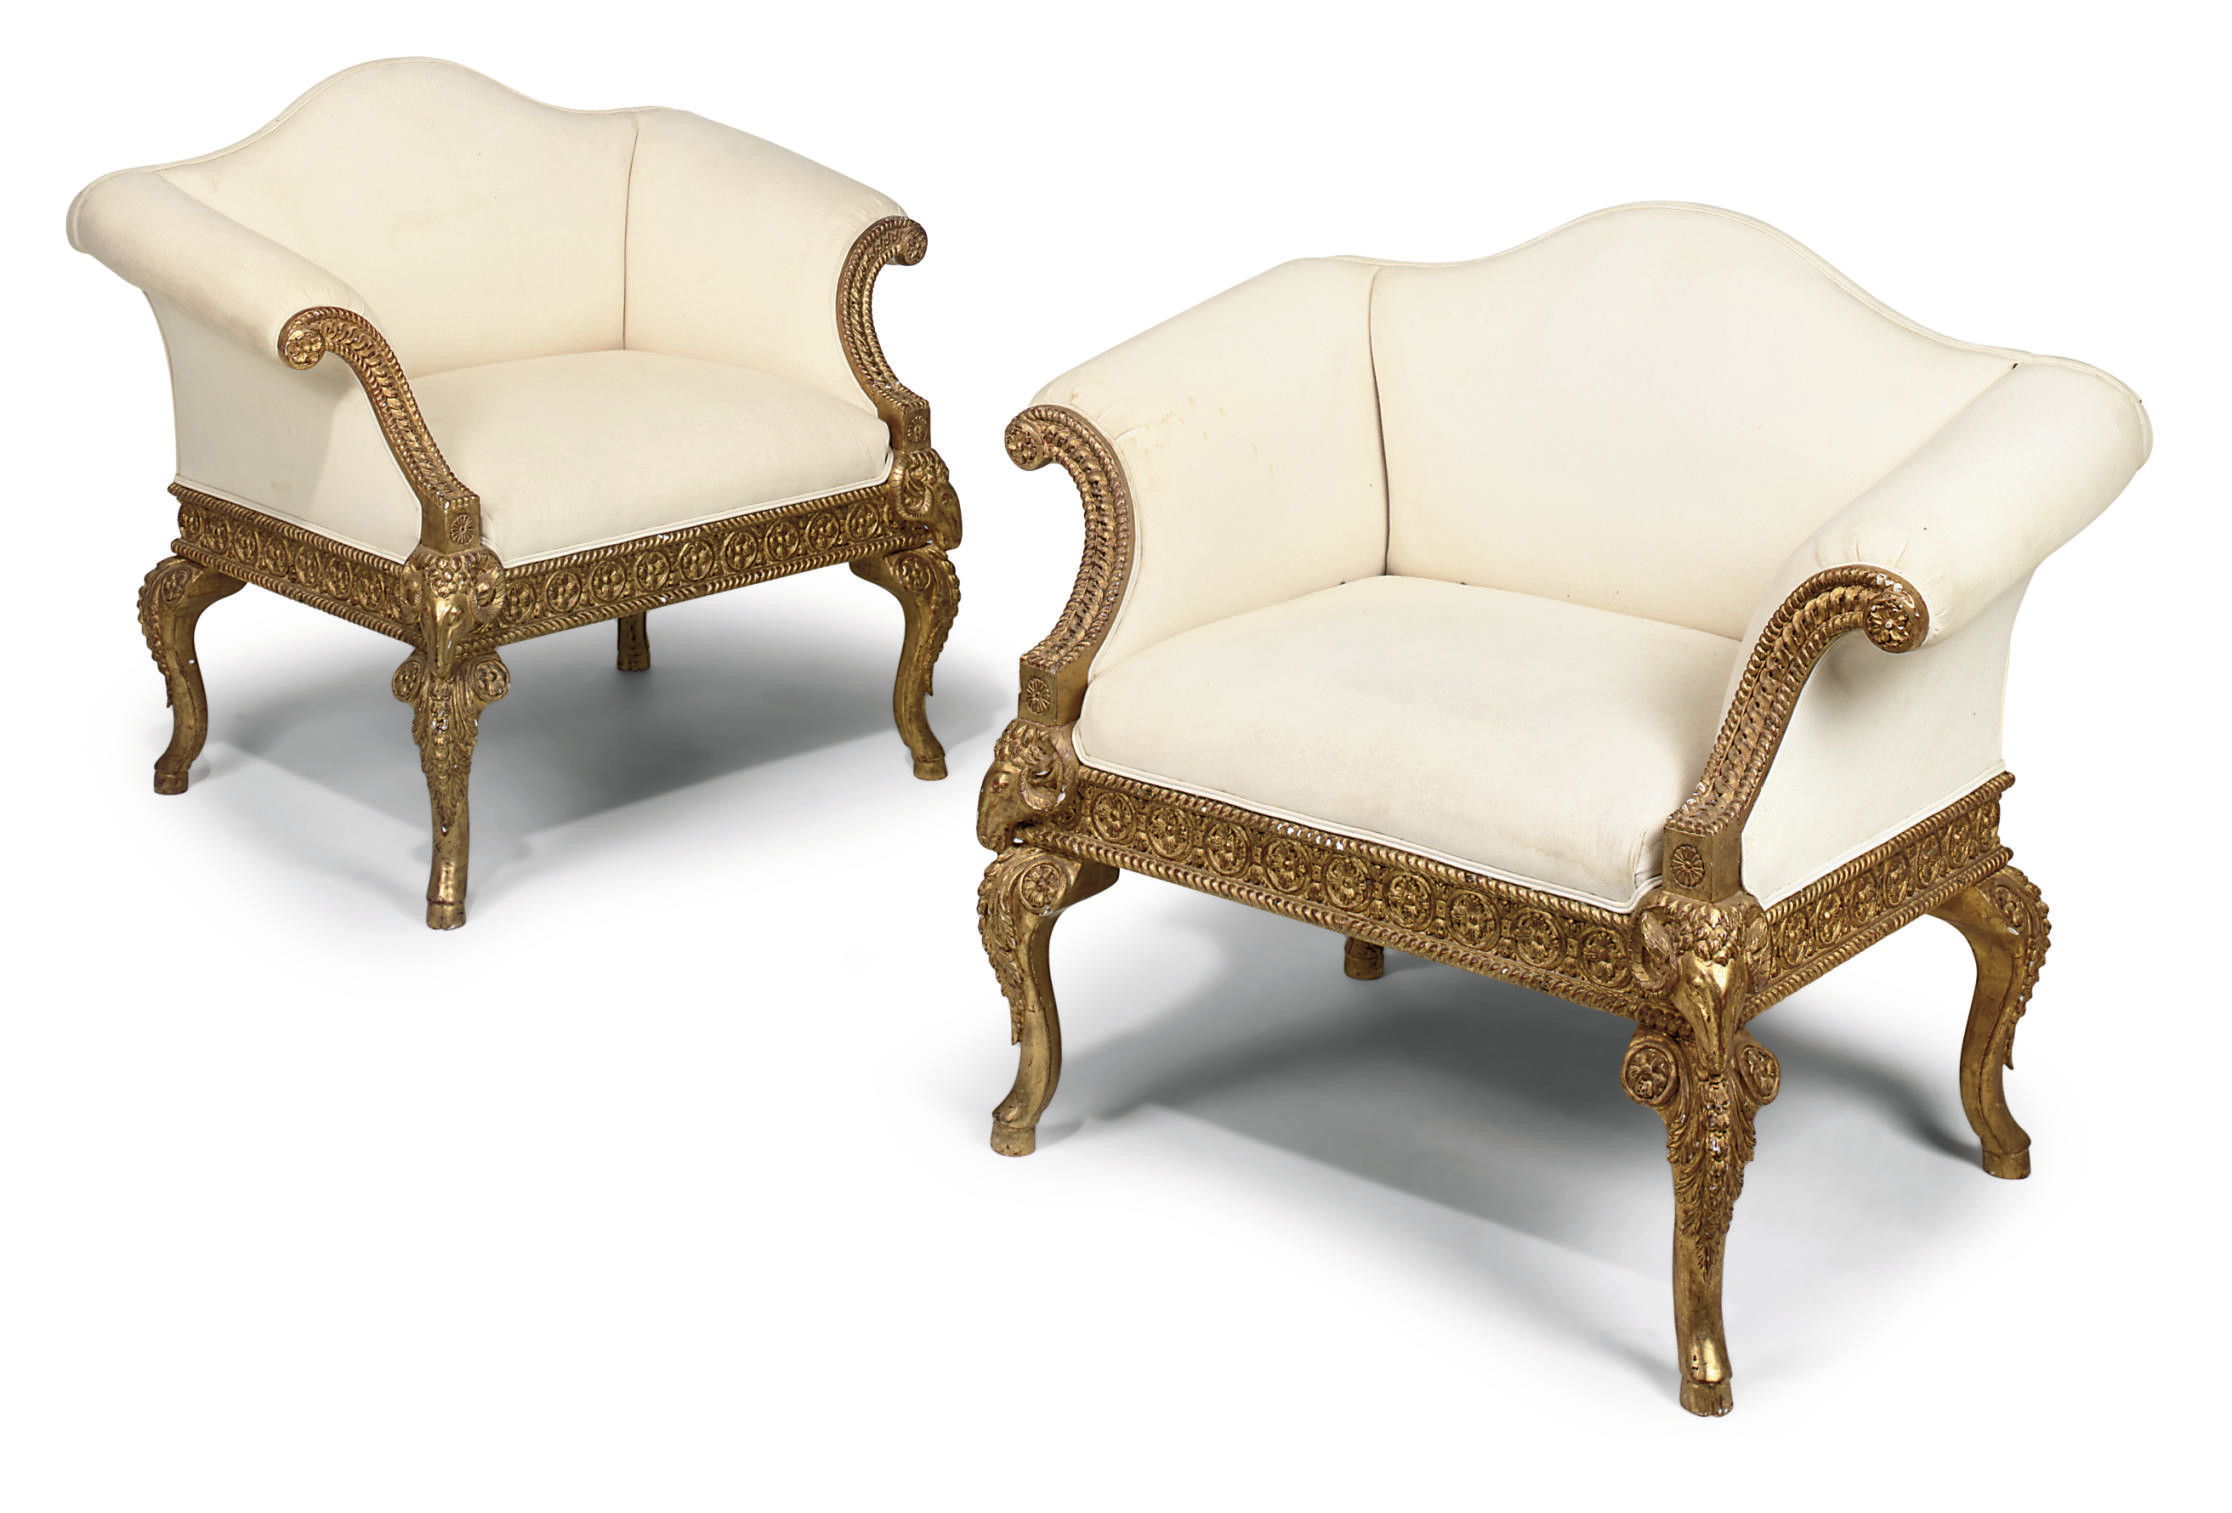 A PAIR OF GILTWOOD ARMCHAIRS